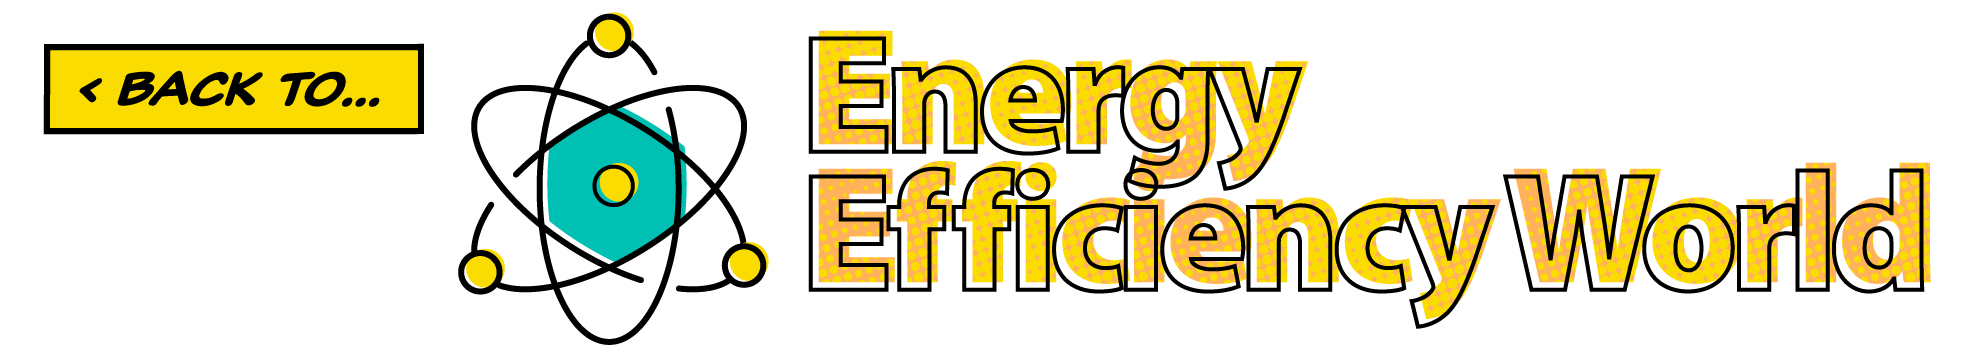 Energy Efficiency World